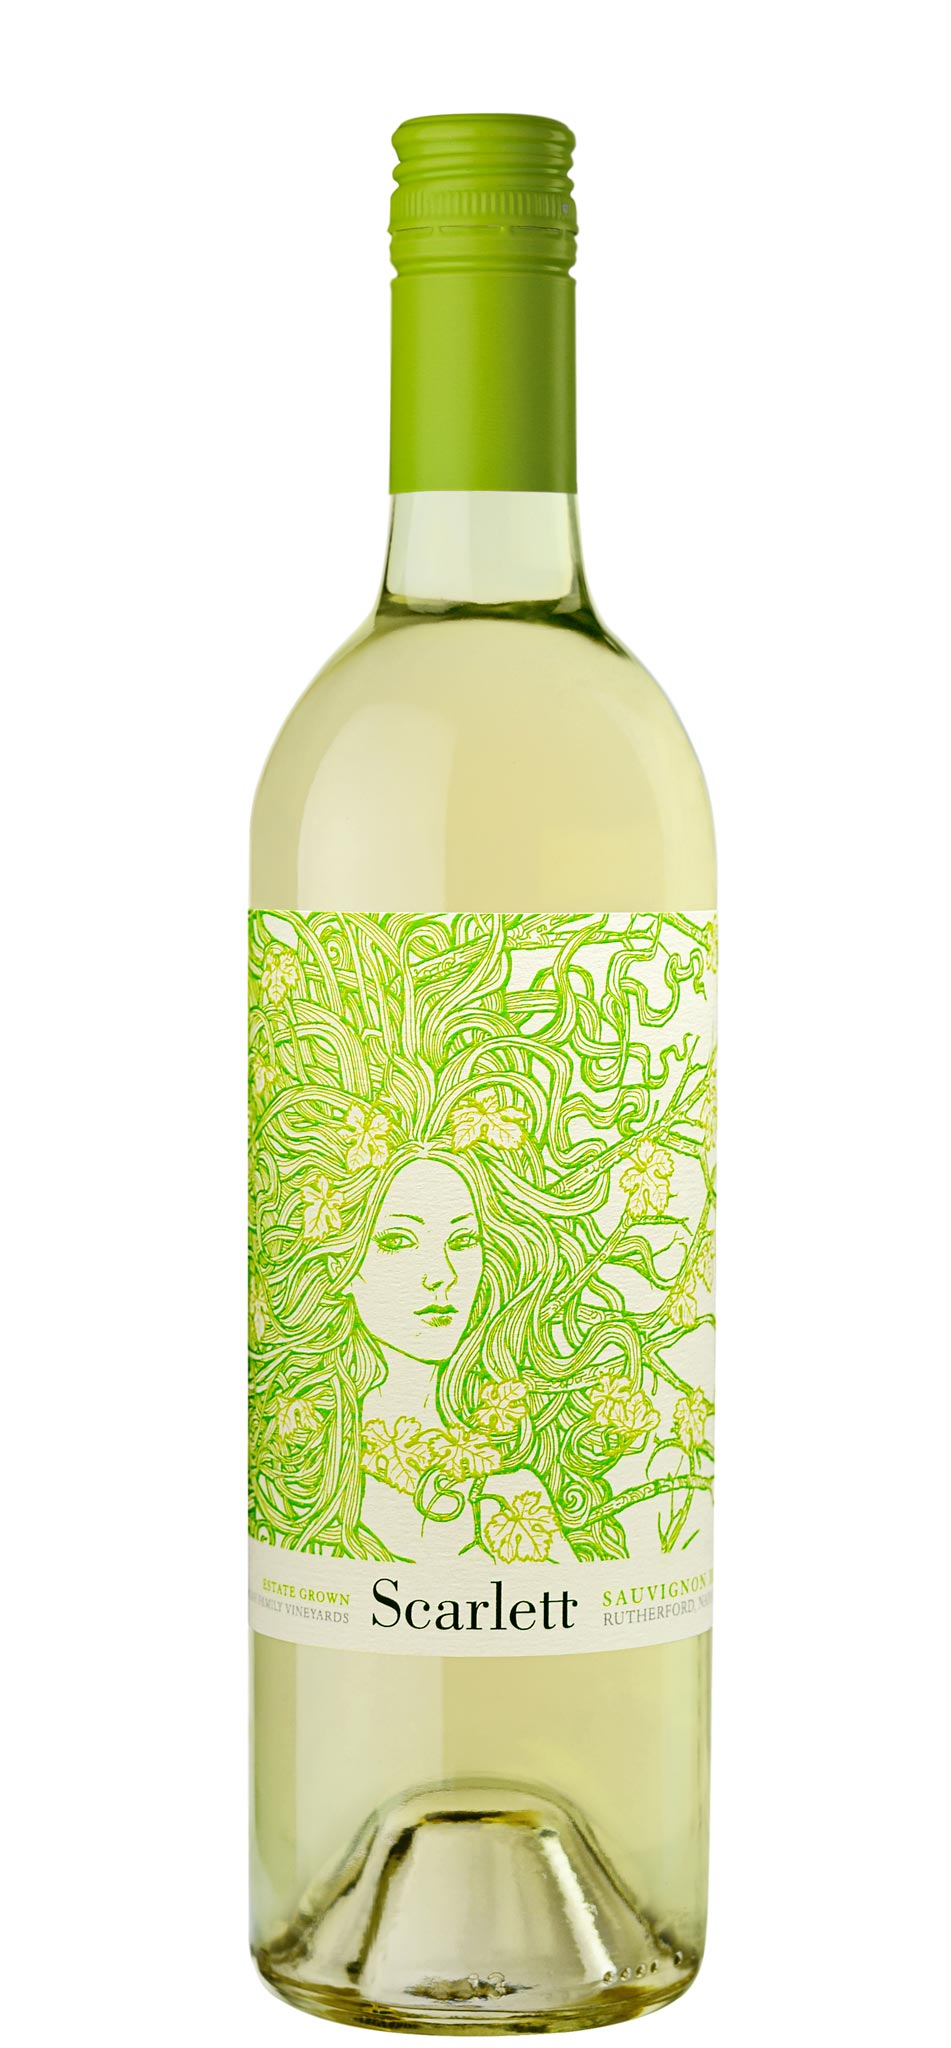 Scarlett-Sauvignon-Blanc-bottle-shot